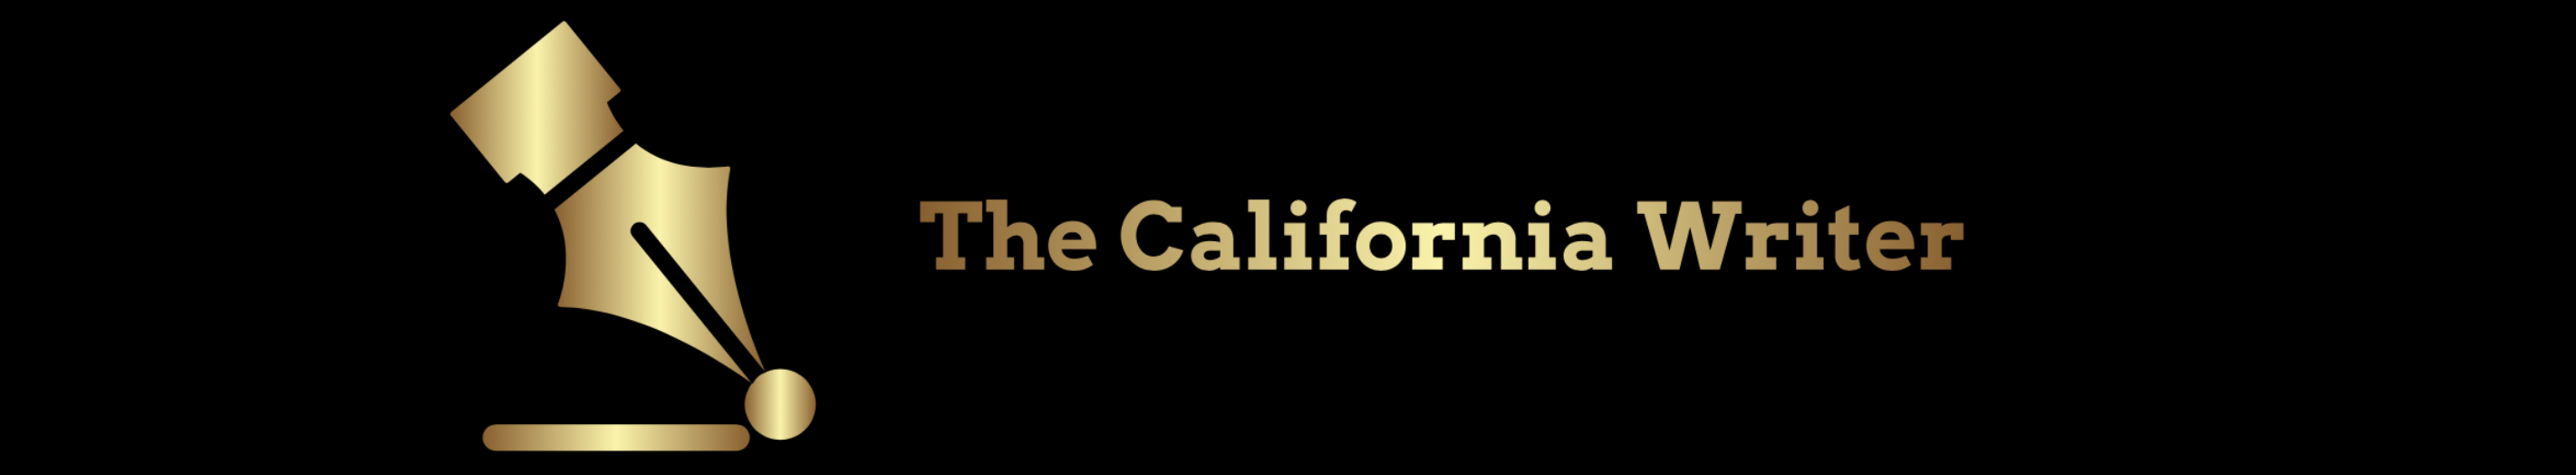 The California Writer